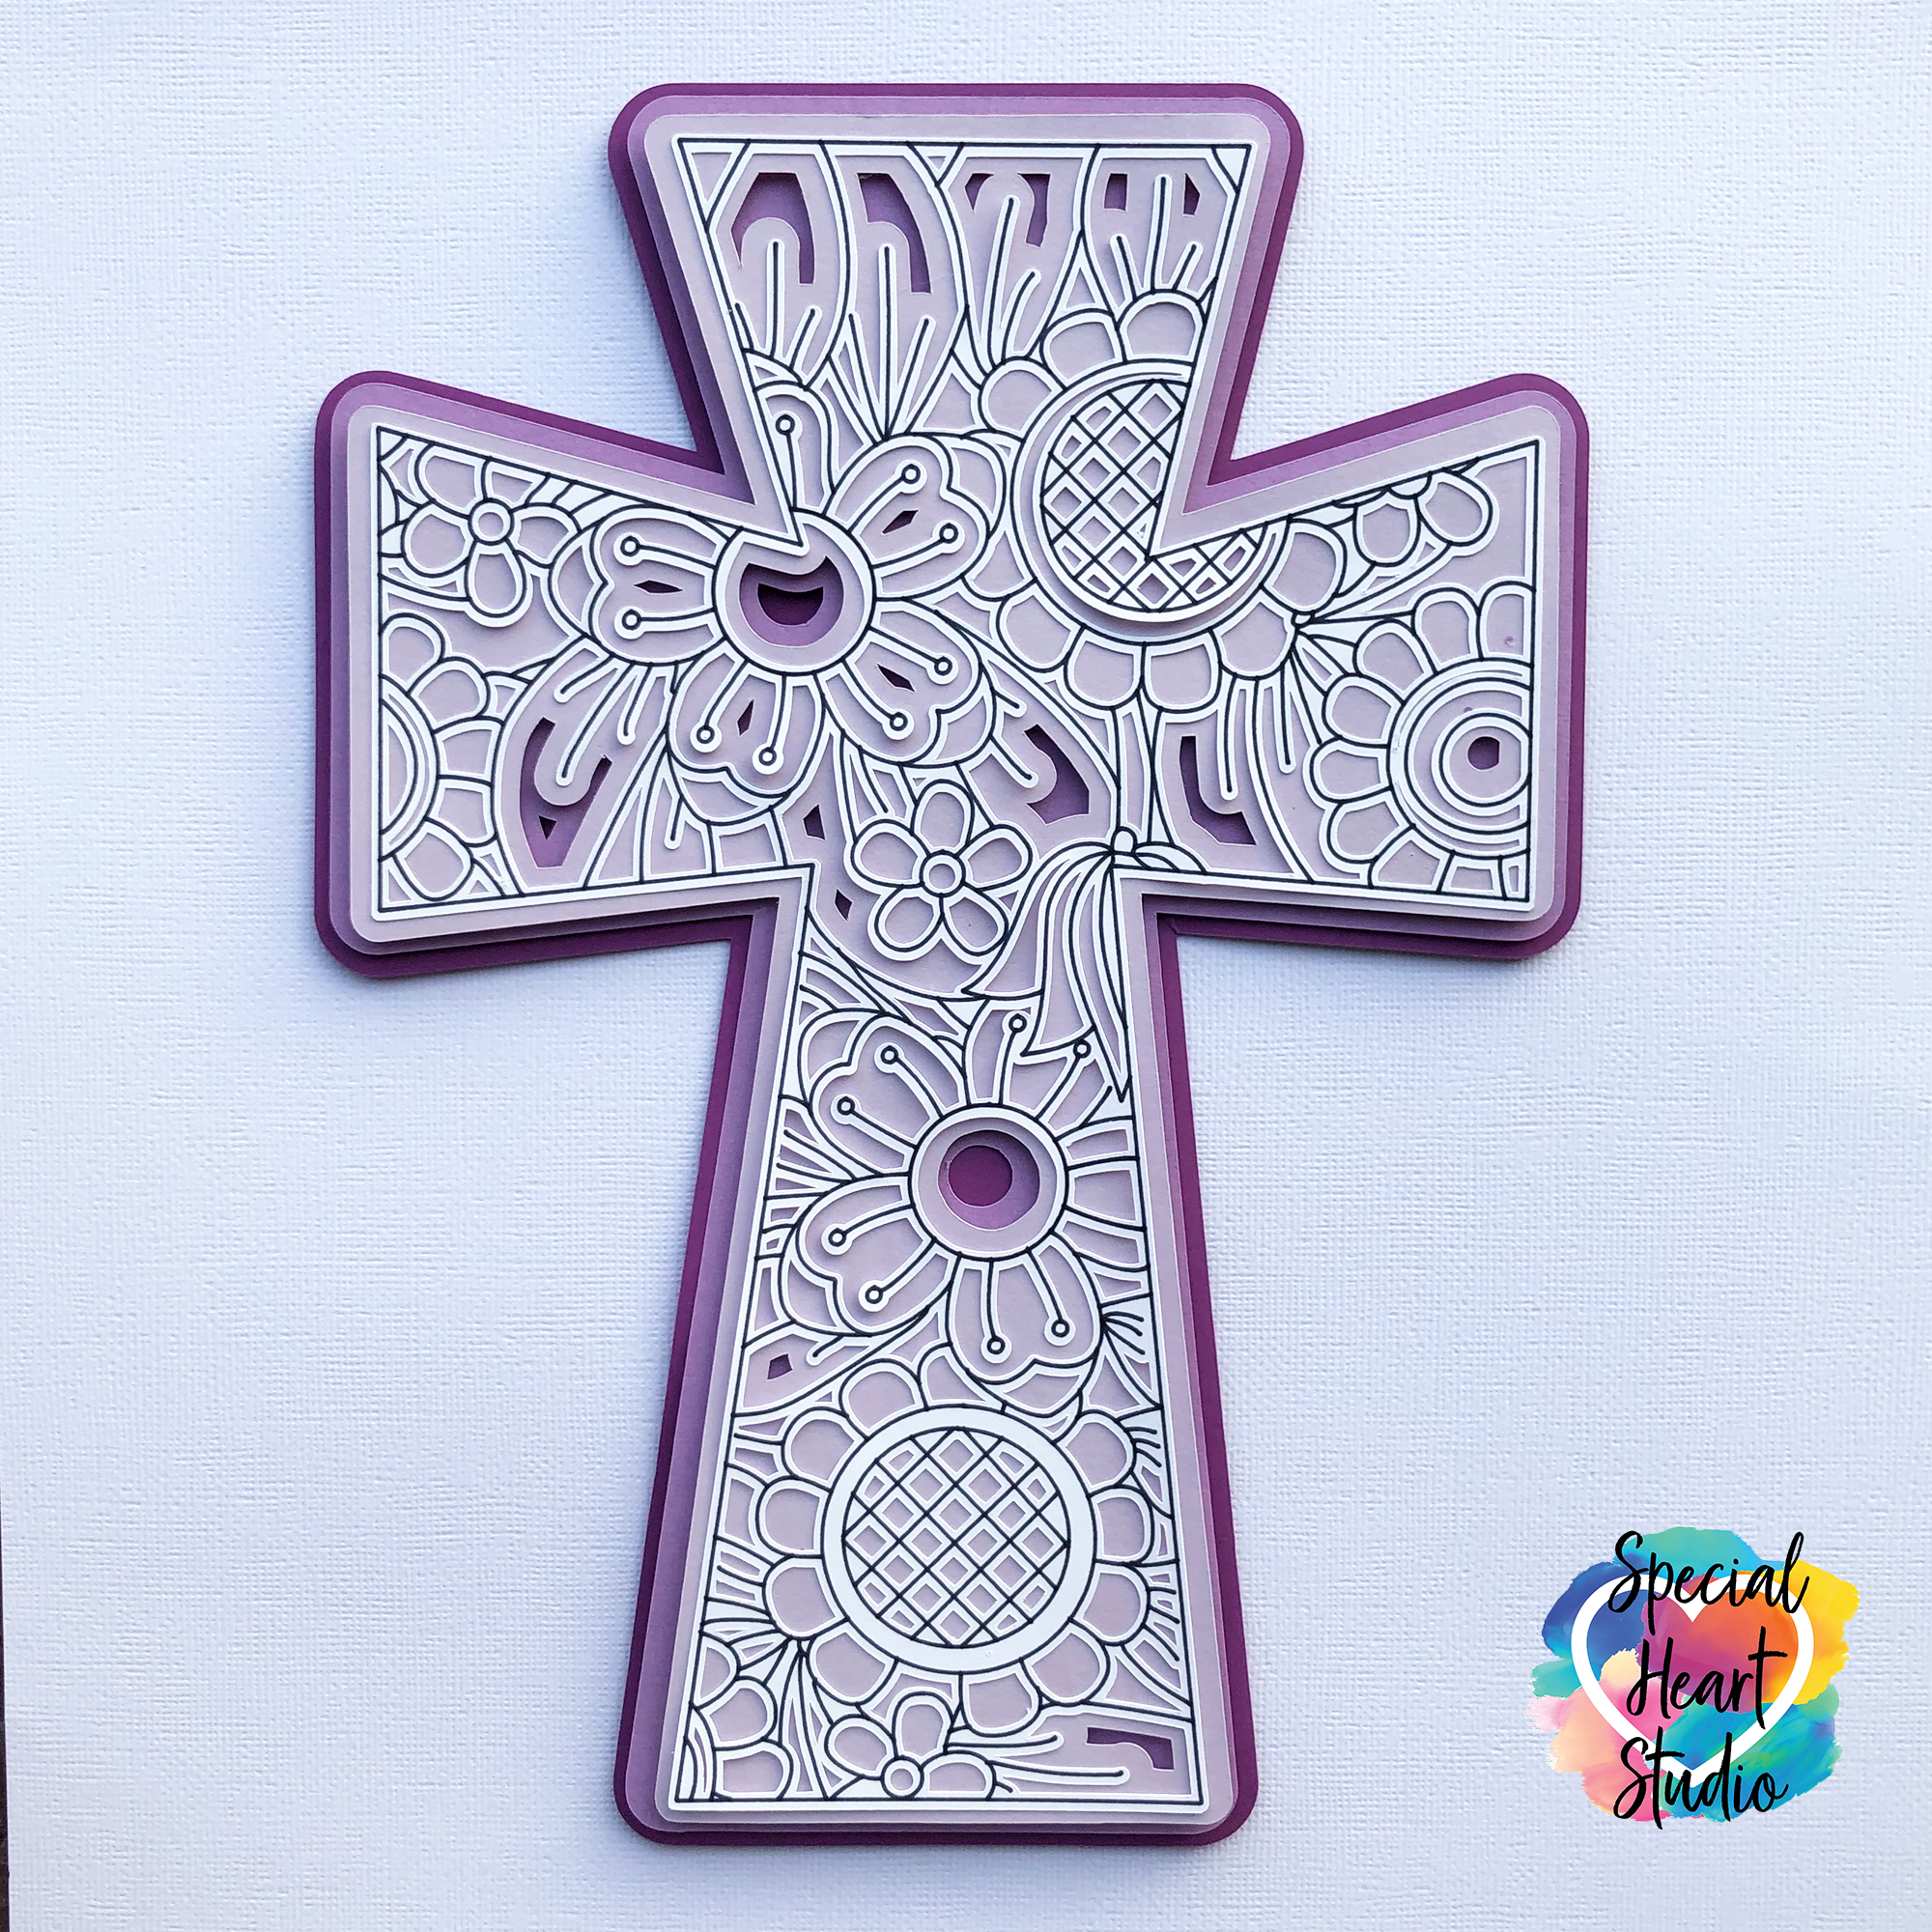 Free Layered Cross Svg Special Heart Studio Cut Files Crafts And Fun